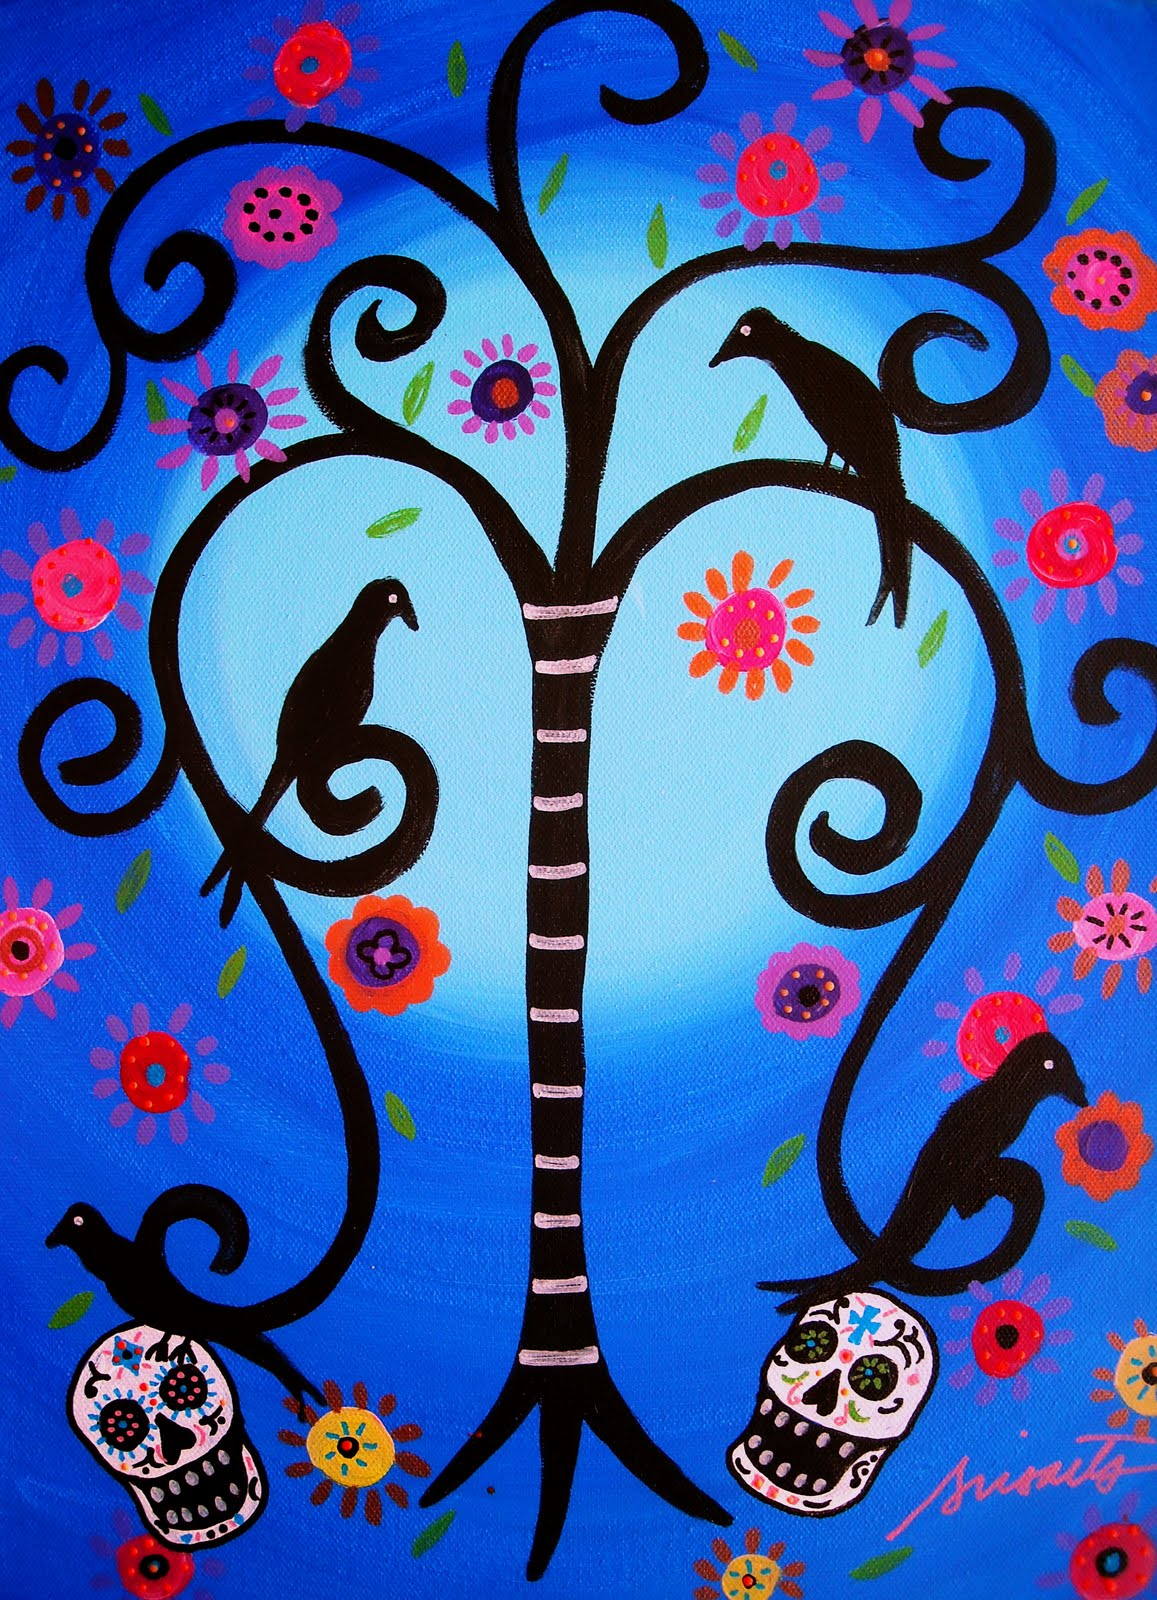 MEXICAN FOLK ART DIA DE LOS MUERTOS PAINTING CHECK OUT ORIGINAL PAINTINGS AT PRISARTS GALLERY